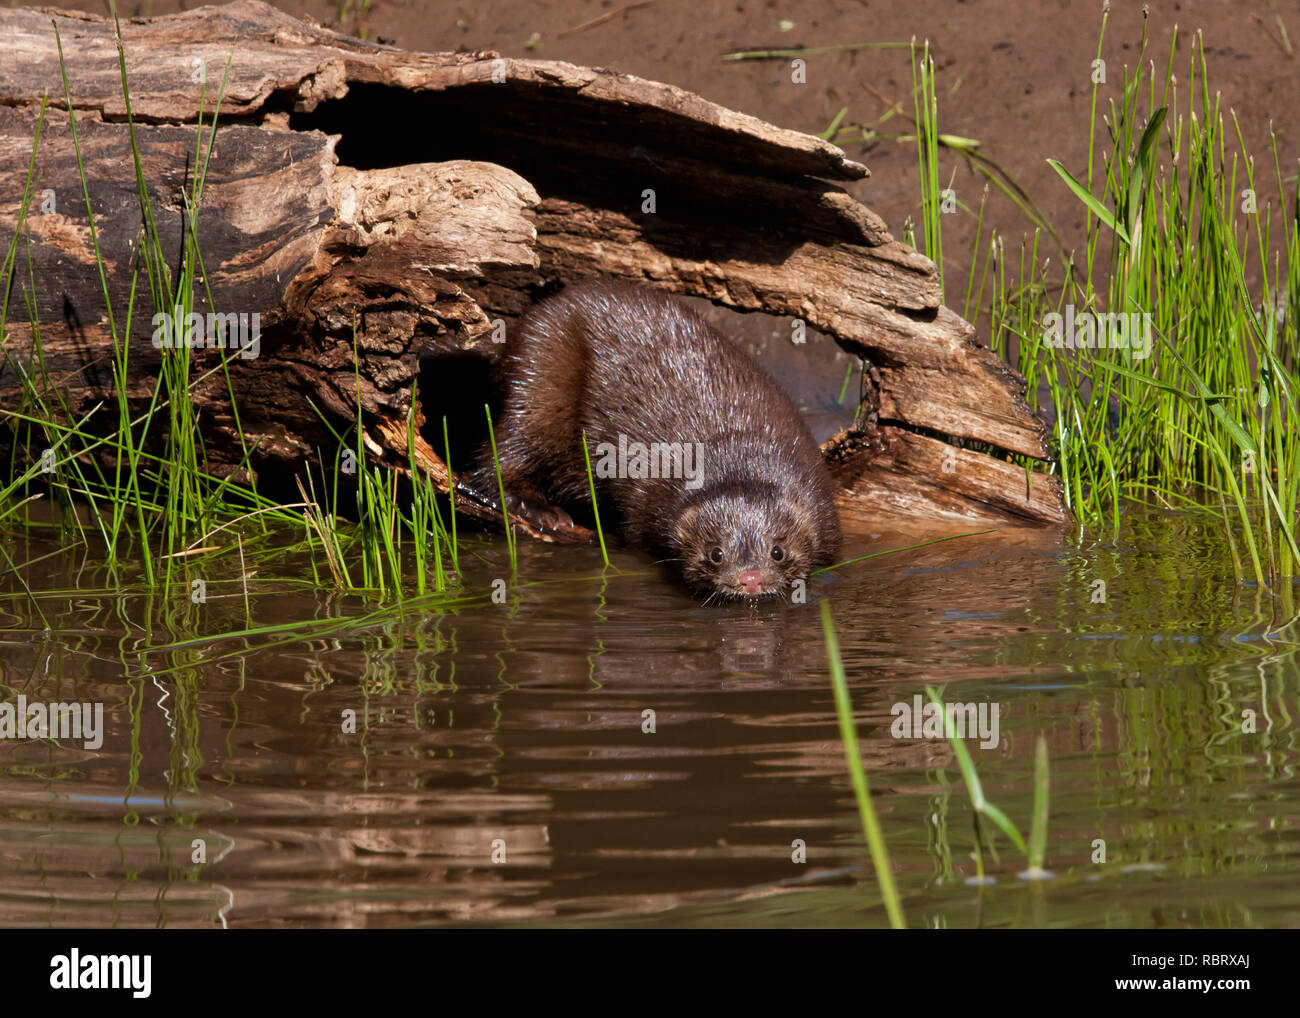 Mink Emerging from Log and Going into the Water - Stock Image